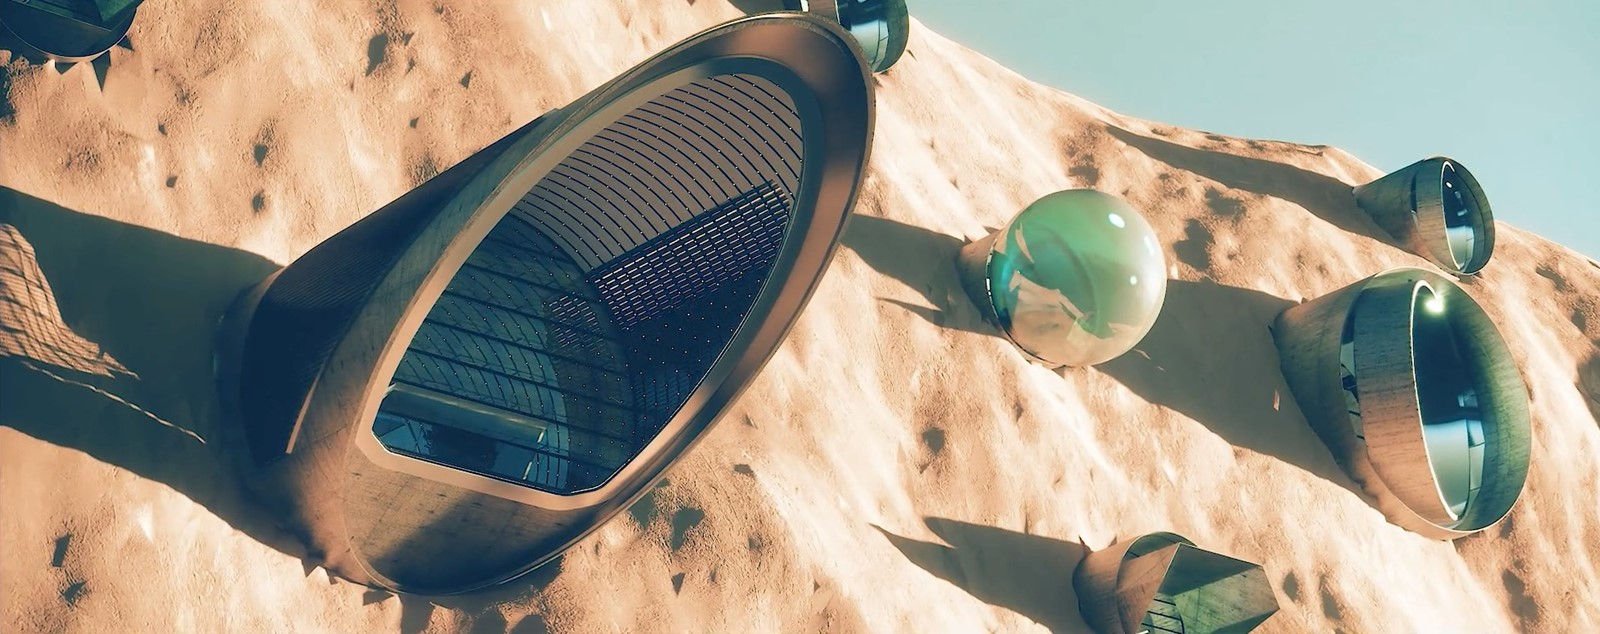 Nüwa, the first self-sustainable city on Mars 4